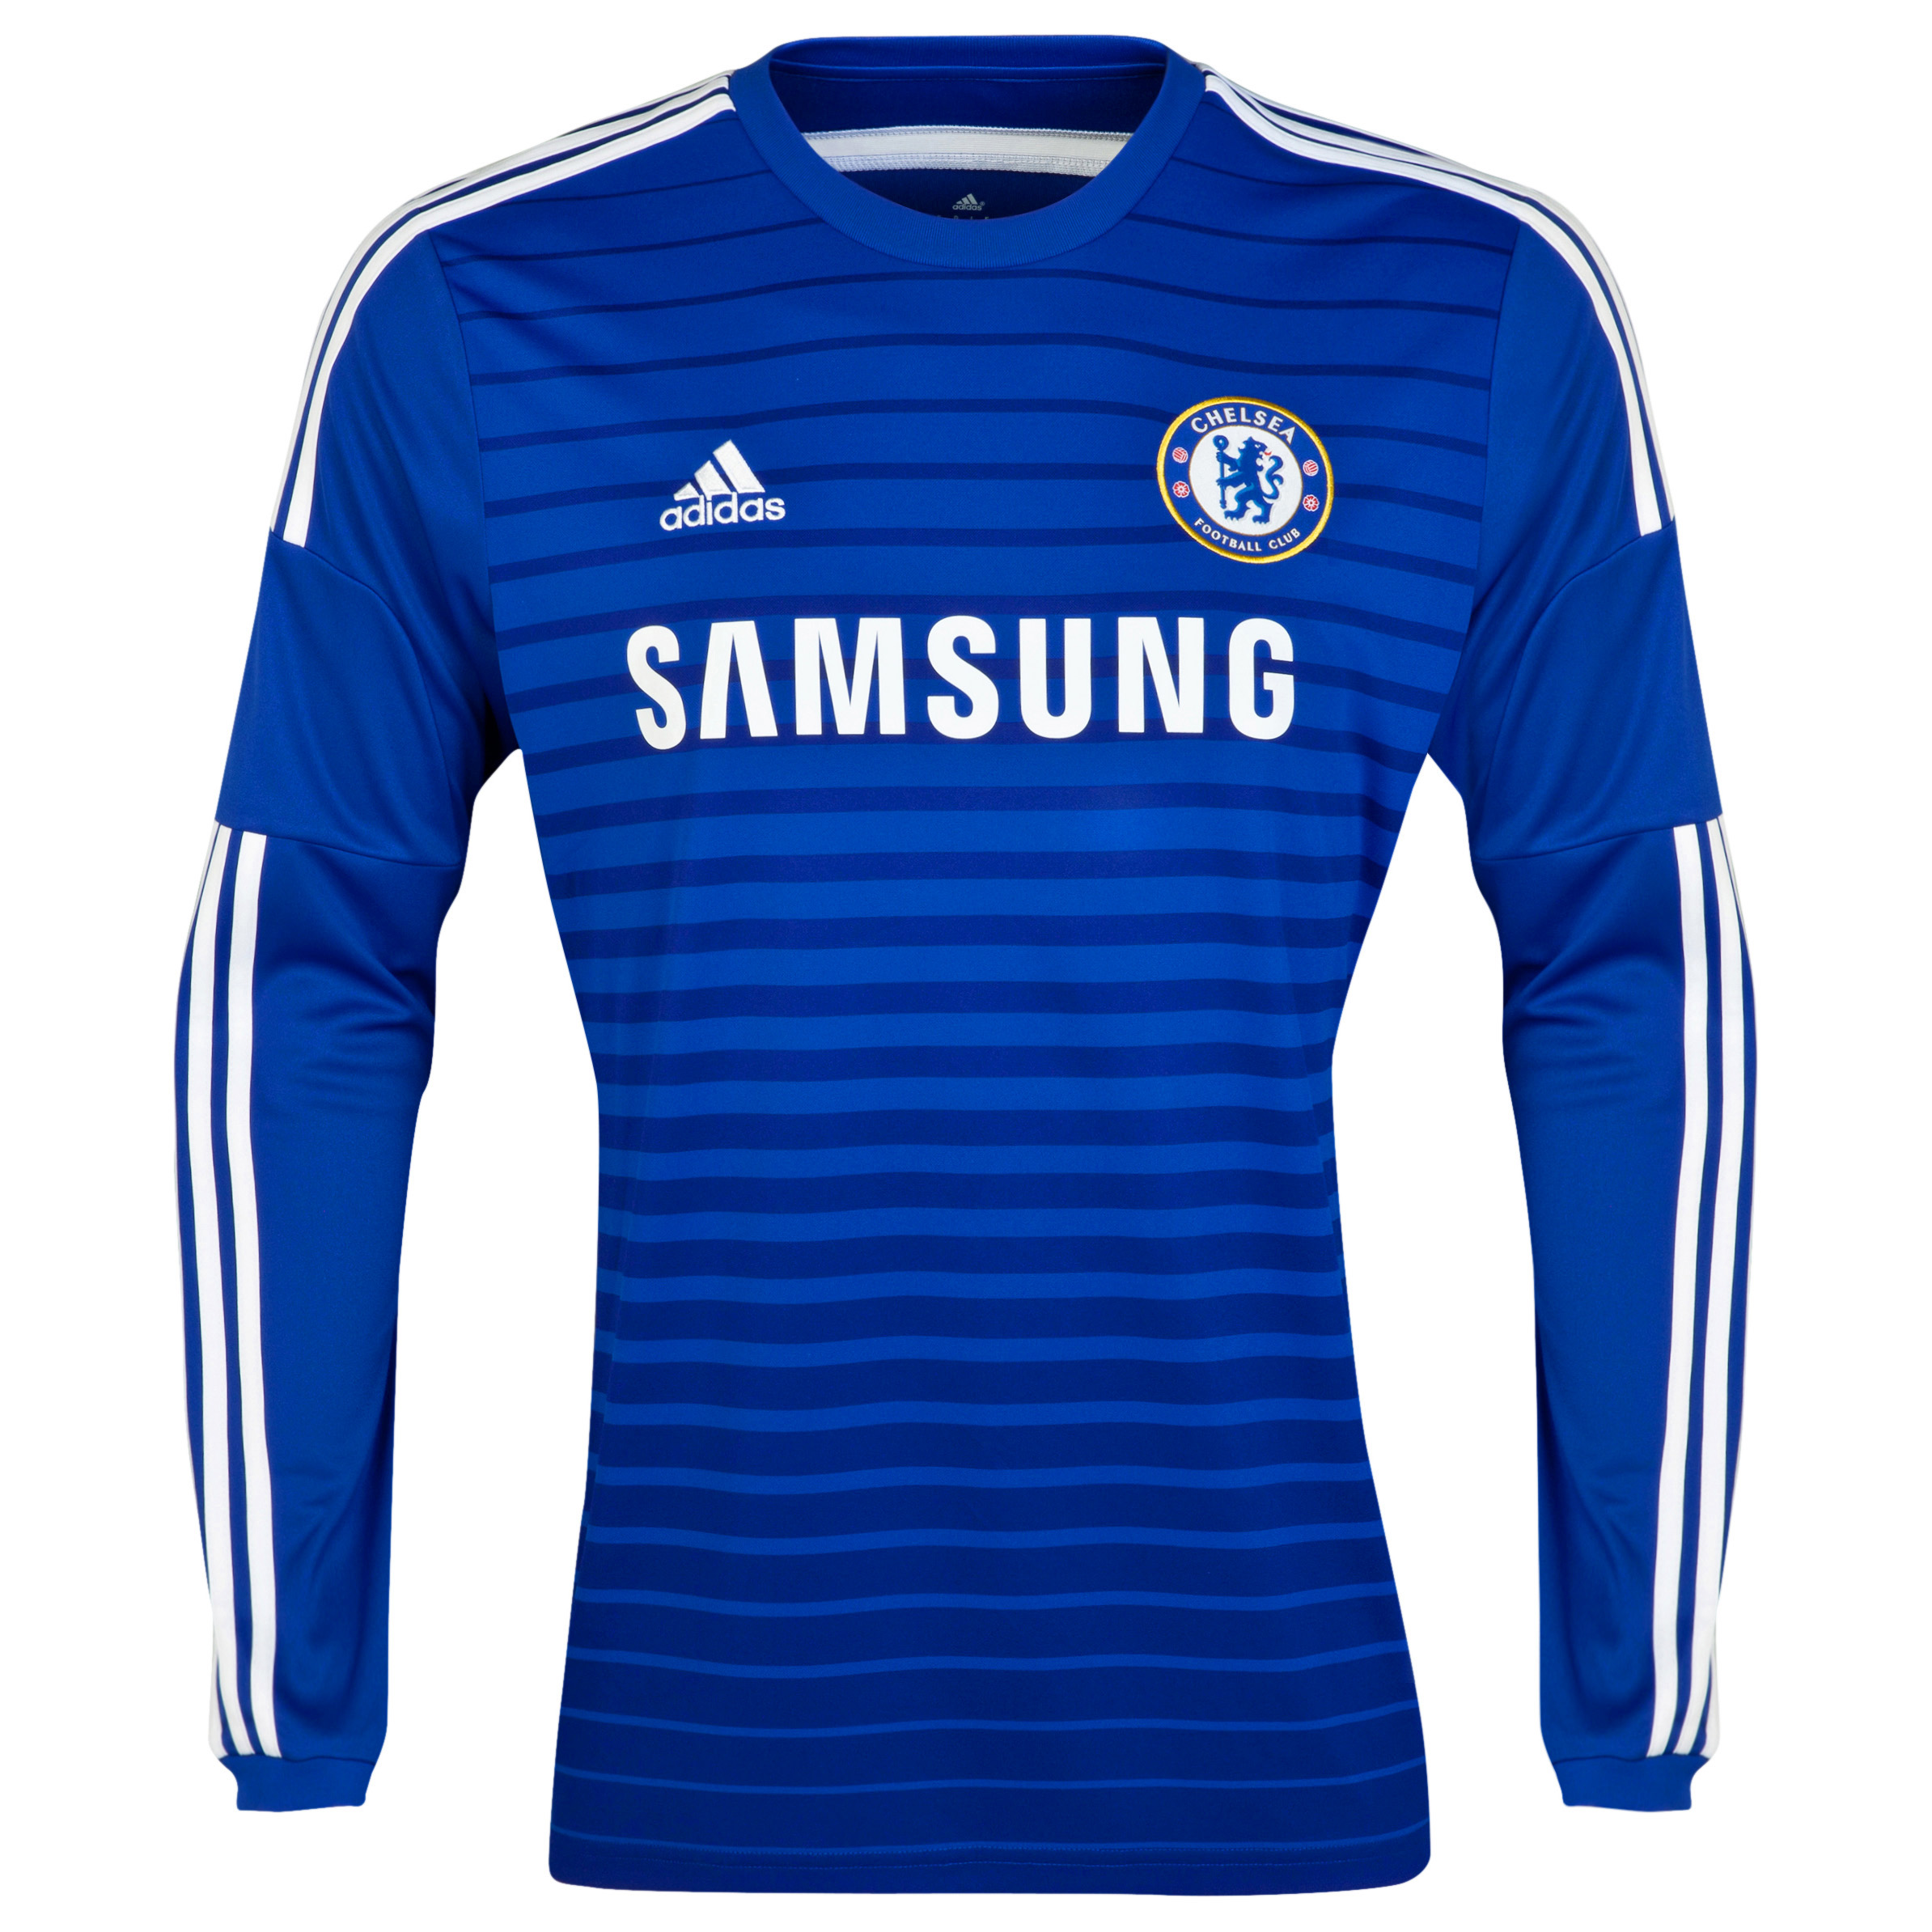 Chelsea Home Shirt 2014/15 - Long Sleeve - Kids